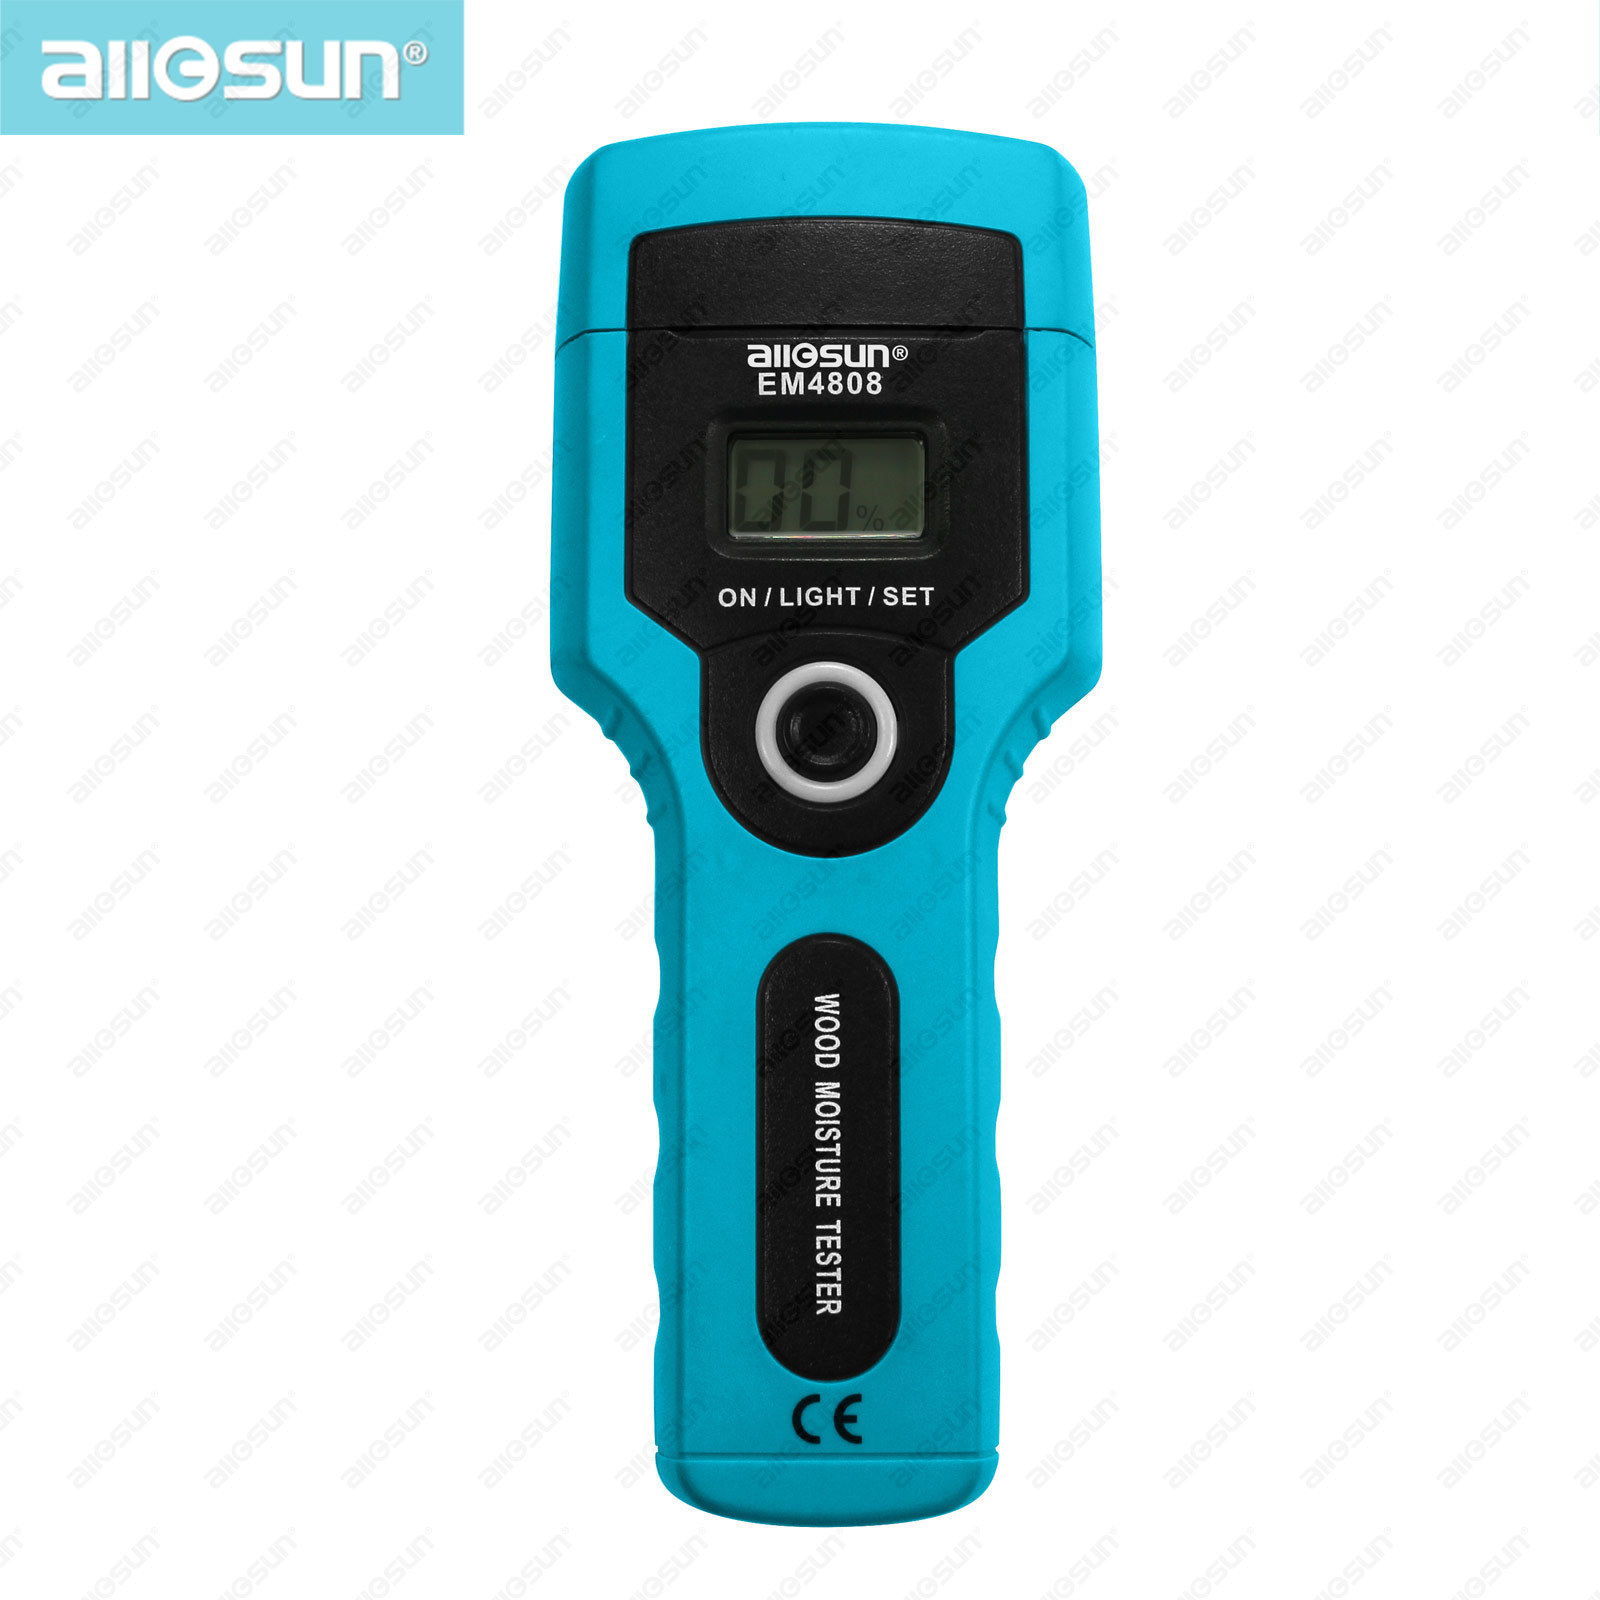 all-sun EM4808 Portable Digital Moisture Meter Wood Humidity Tester 7 ranges Measurement Resolution:1% Accuracy up to 2%-5%(China (Mainland))